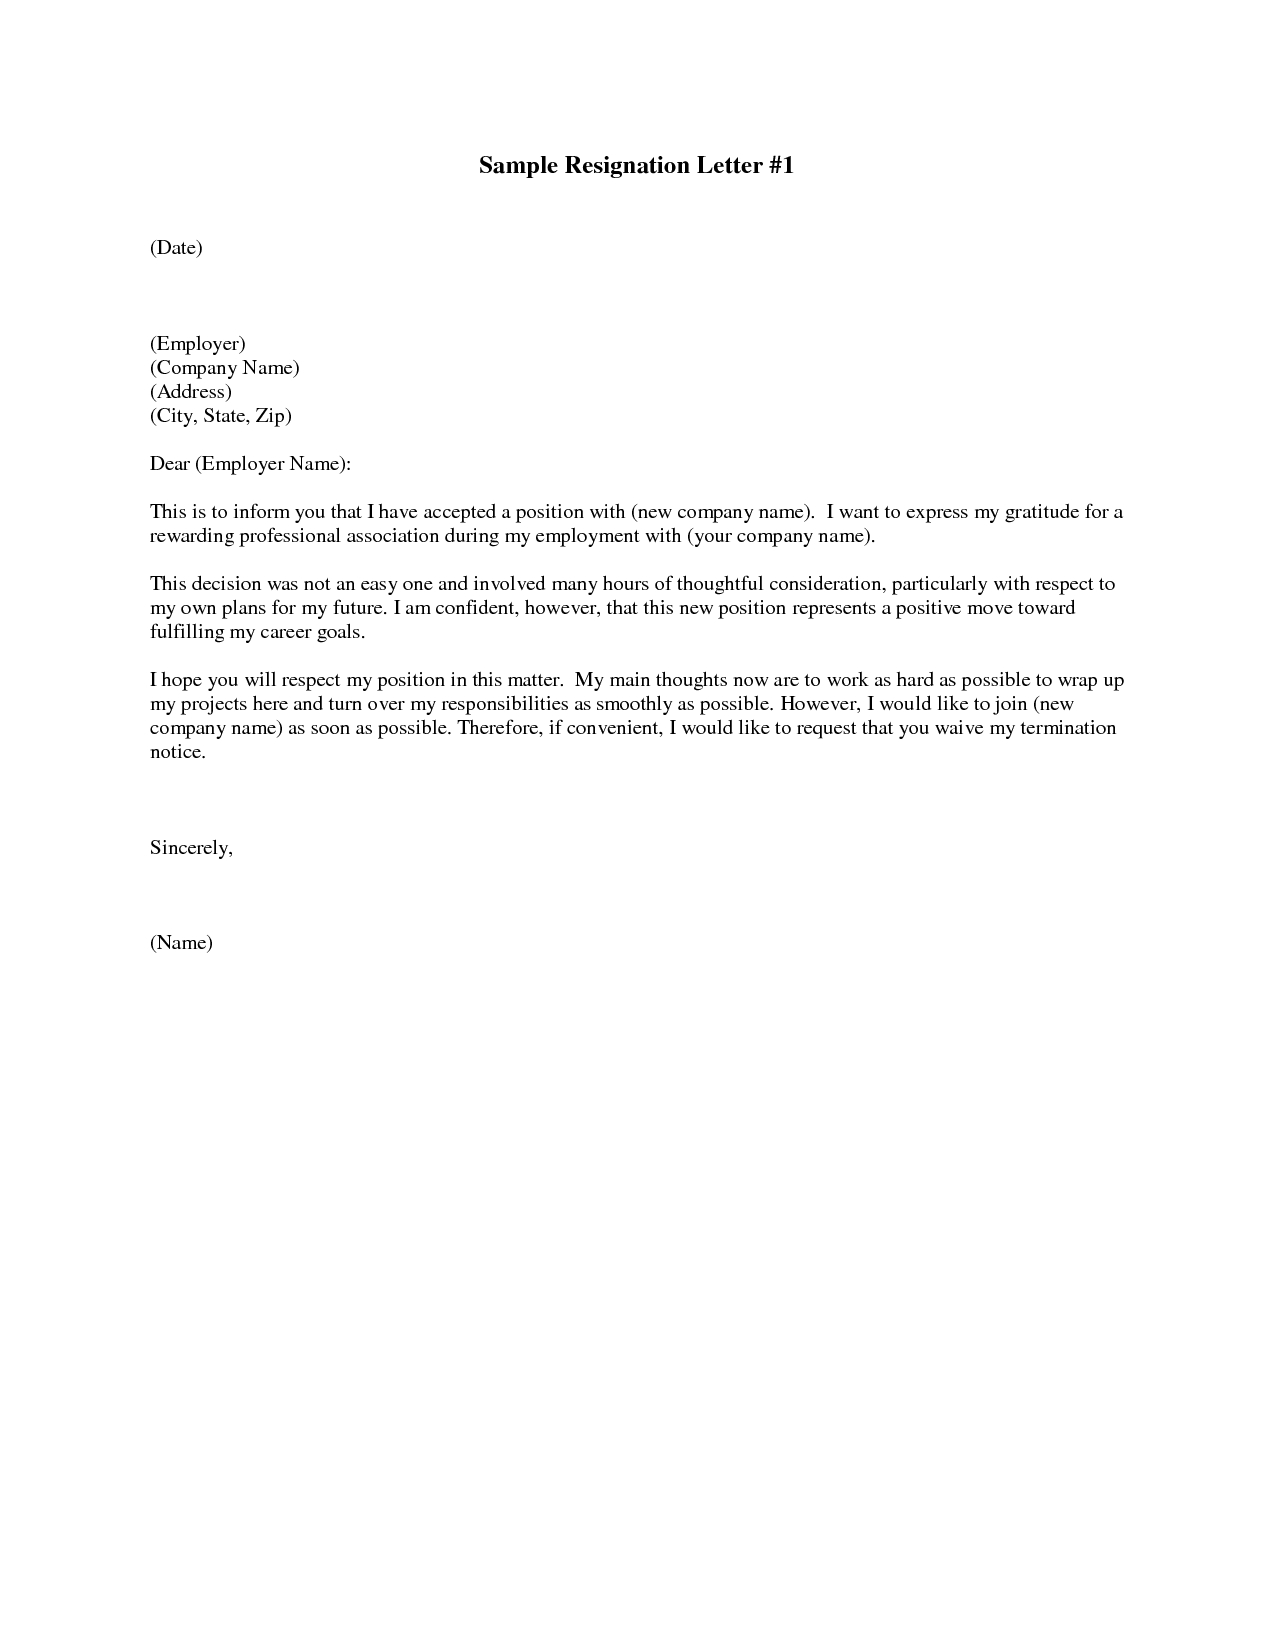 Resignation Letter Template - Printable Sample Letter Of Resignation form